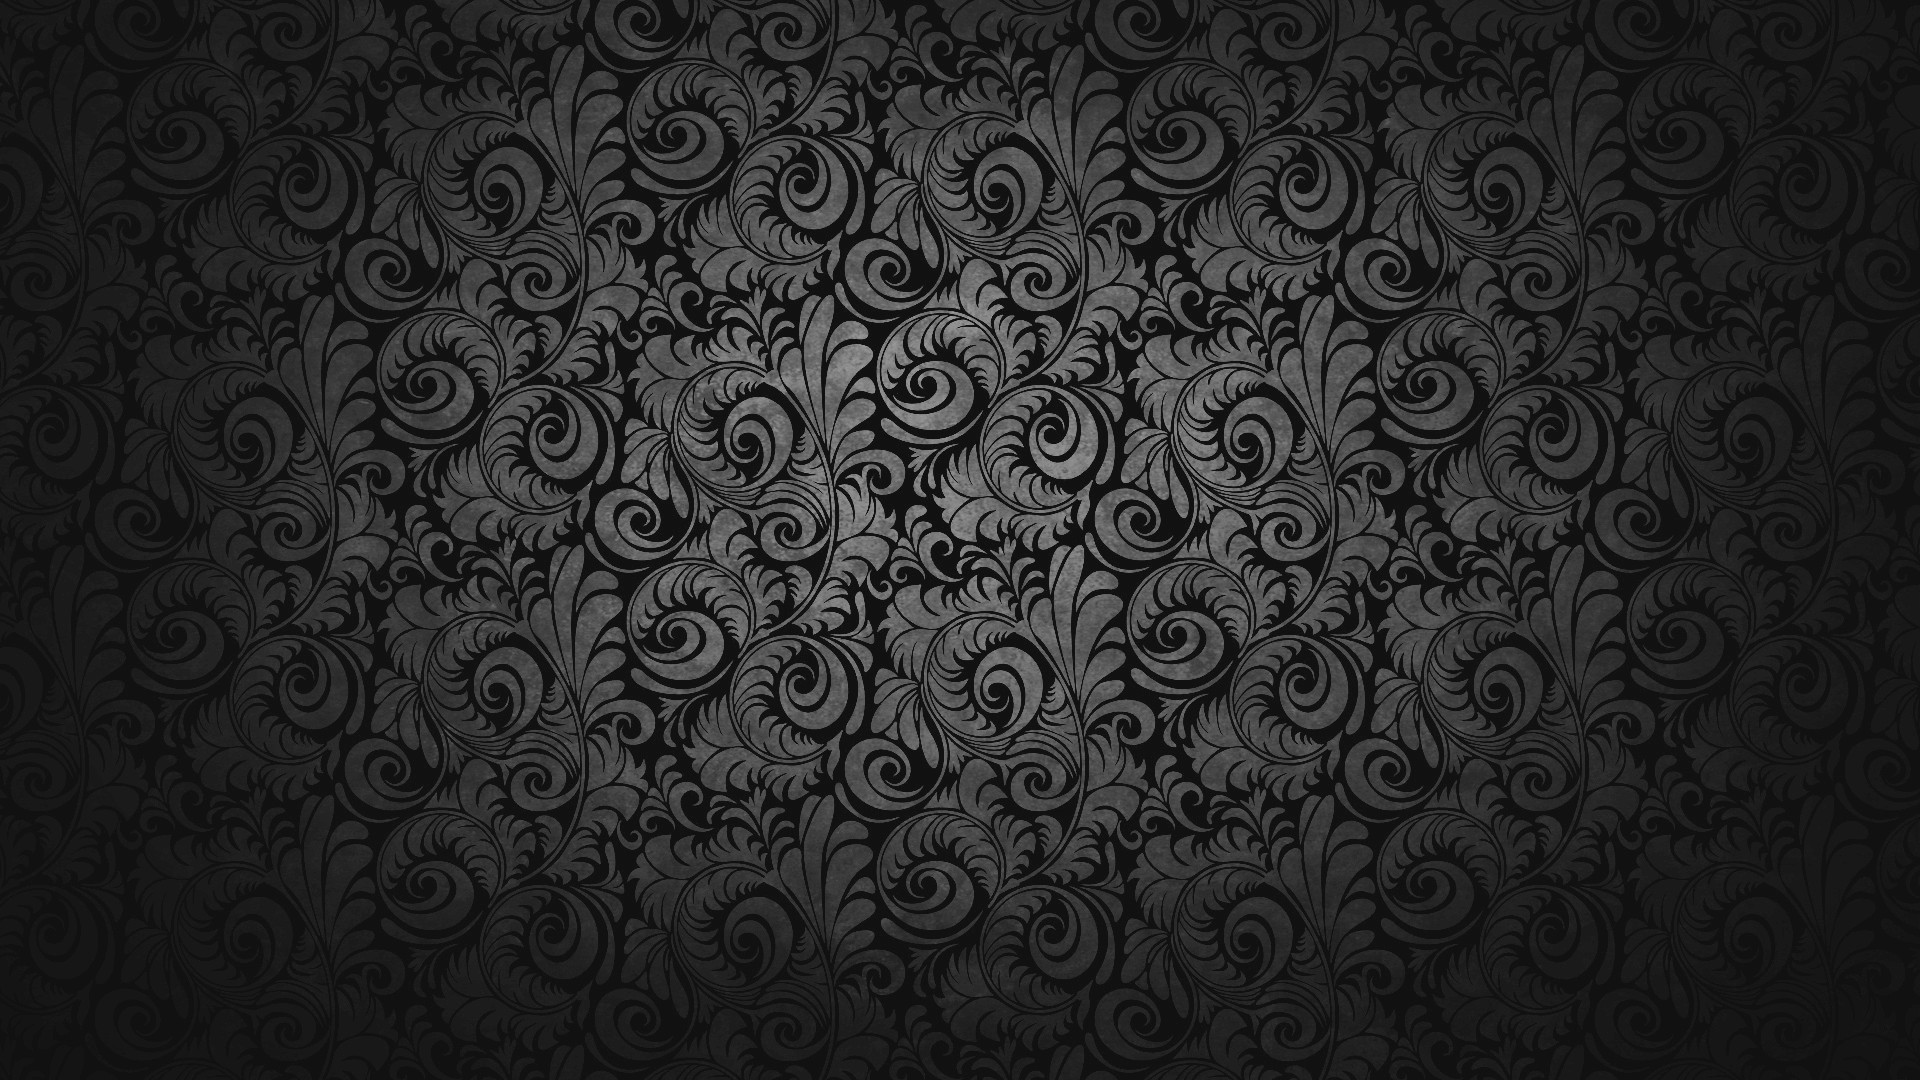 Chic Dark Black Abstract Flower Classic Motif Legend Background Hd Wallpaper